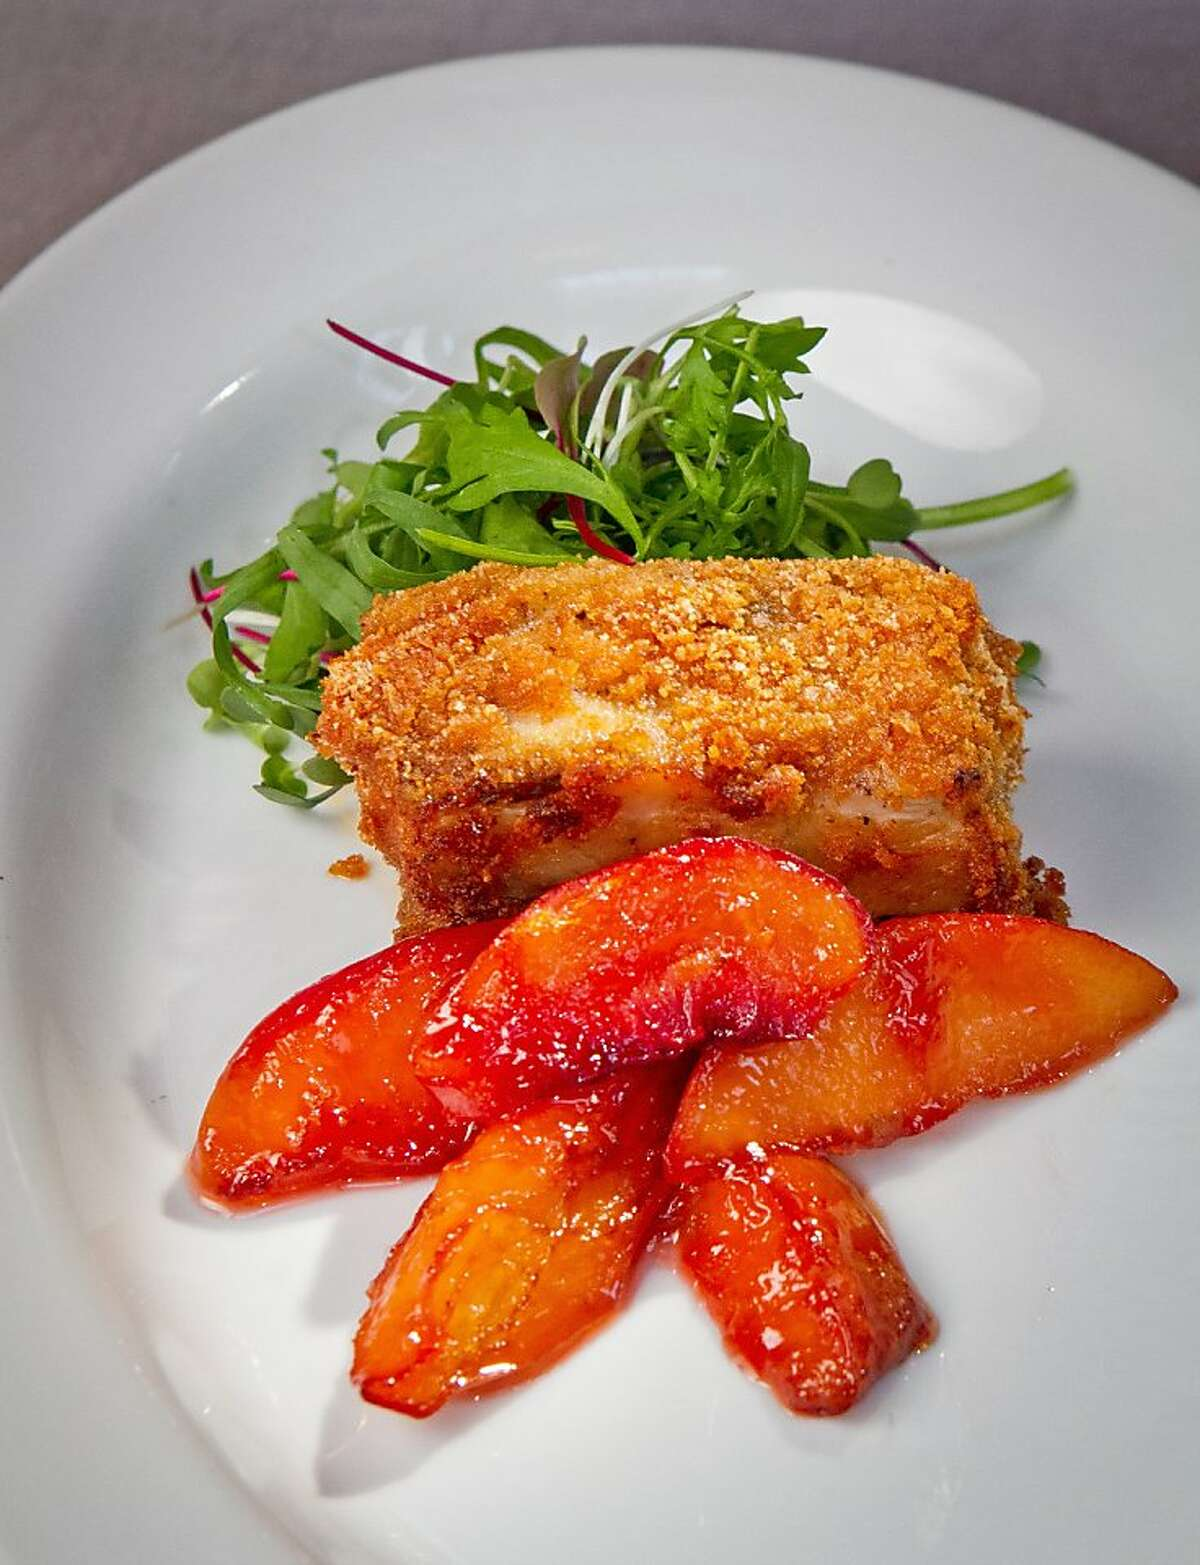 The Dijon Pork Belly with Peach Chutney at Foreign Cinema in San Francisco, Calif., is seen on Saturday, August 18th, 2012.